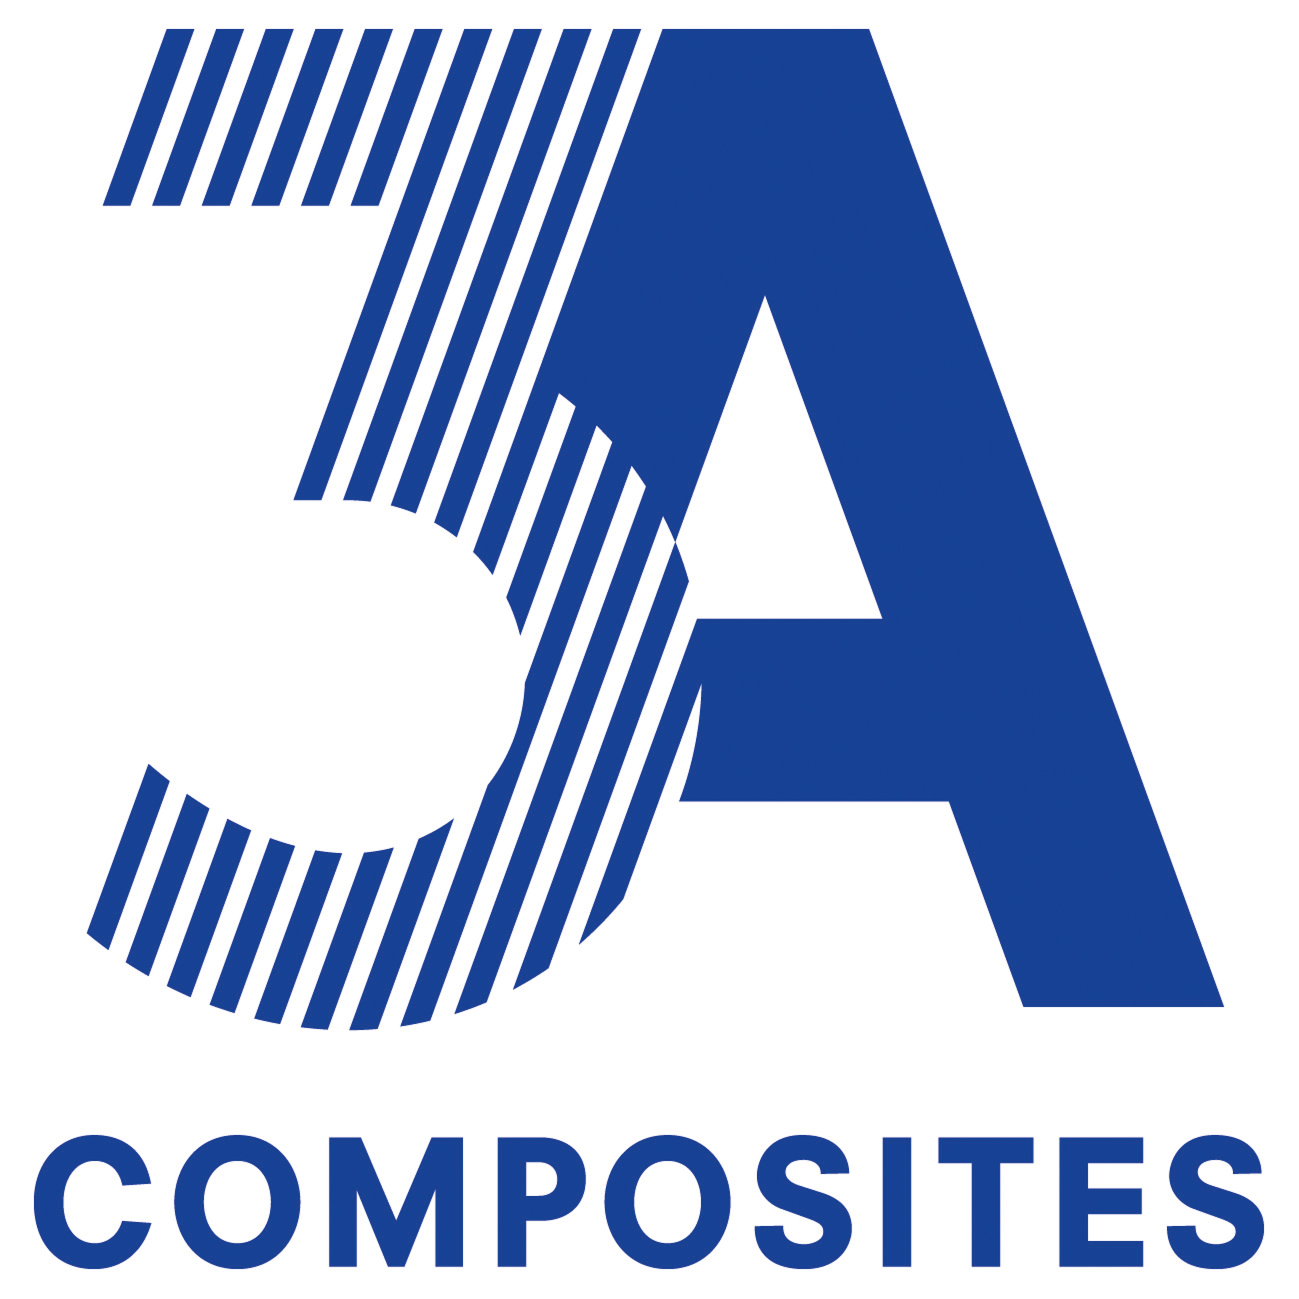 3A Composites GmbH - FESPA 2018 - Where Print Takes Off - FESPA ...